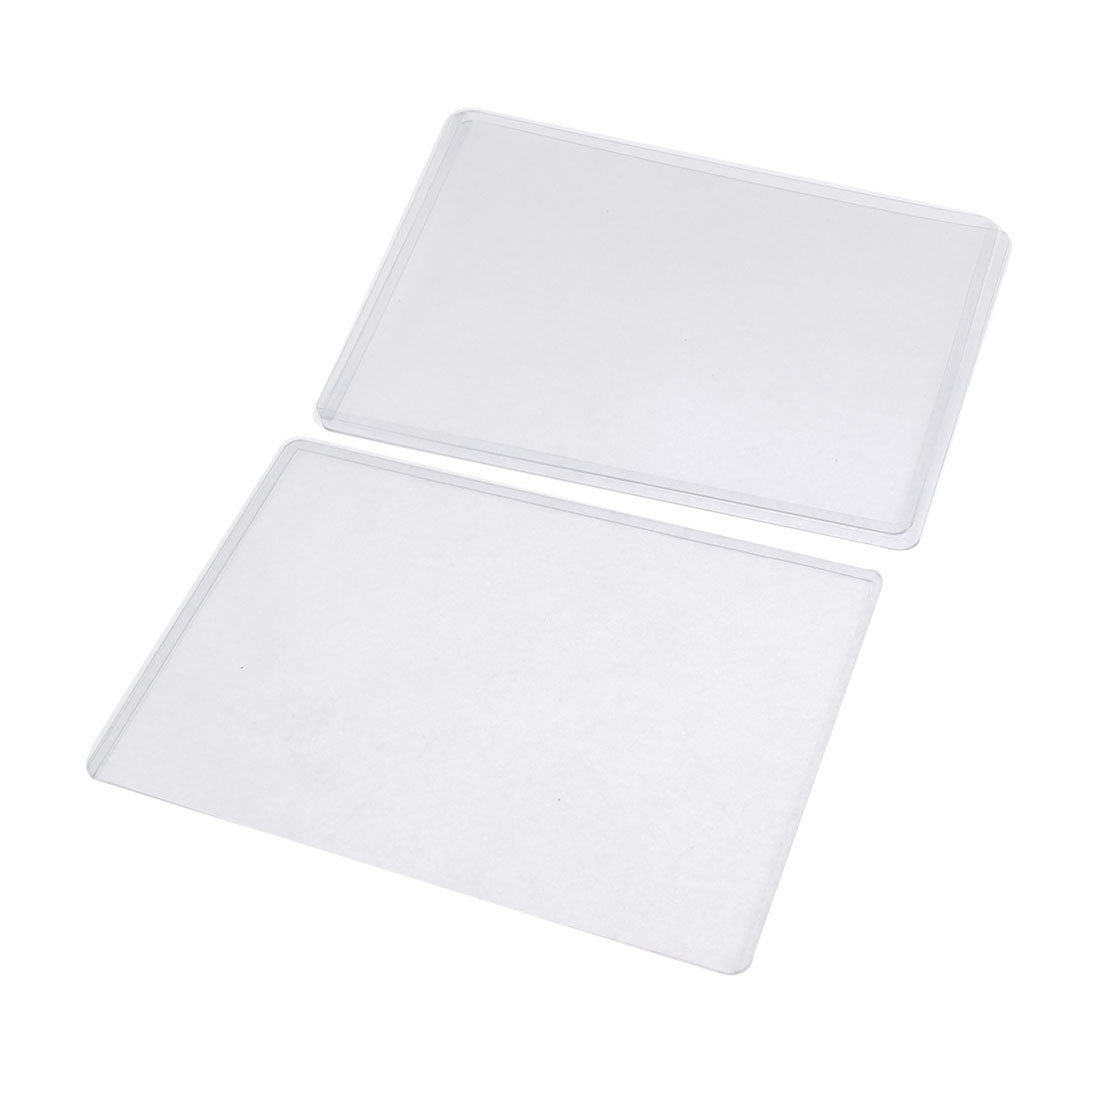 3pcs Clear Plastic B6 Badge Credit ID Card Holder Cover Protector